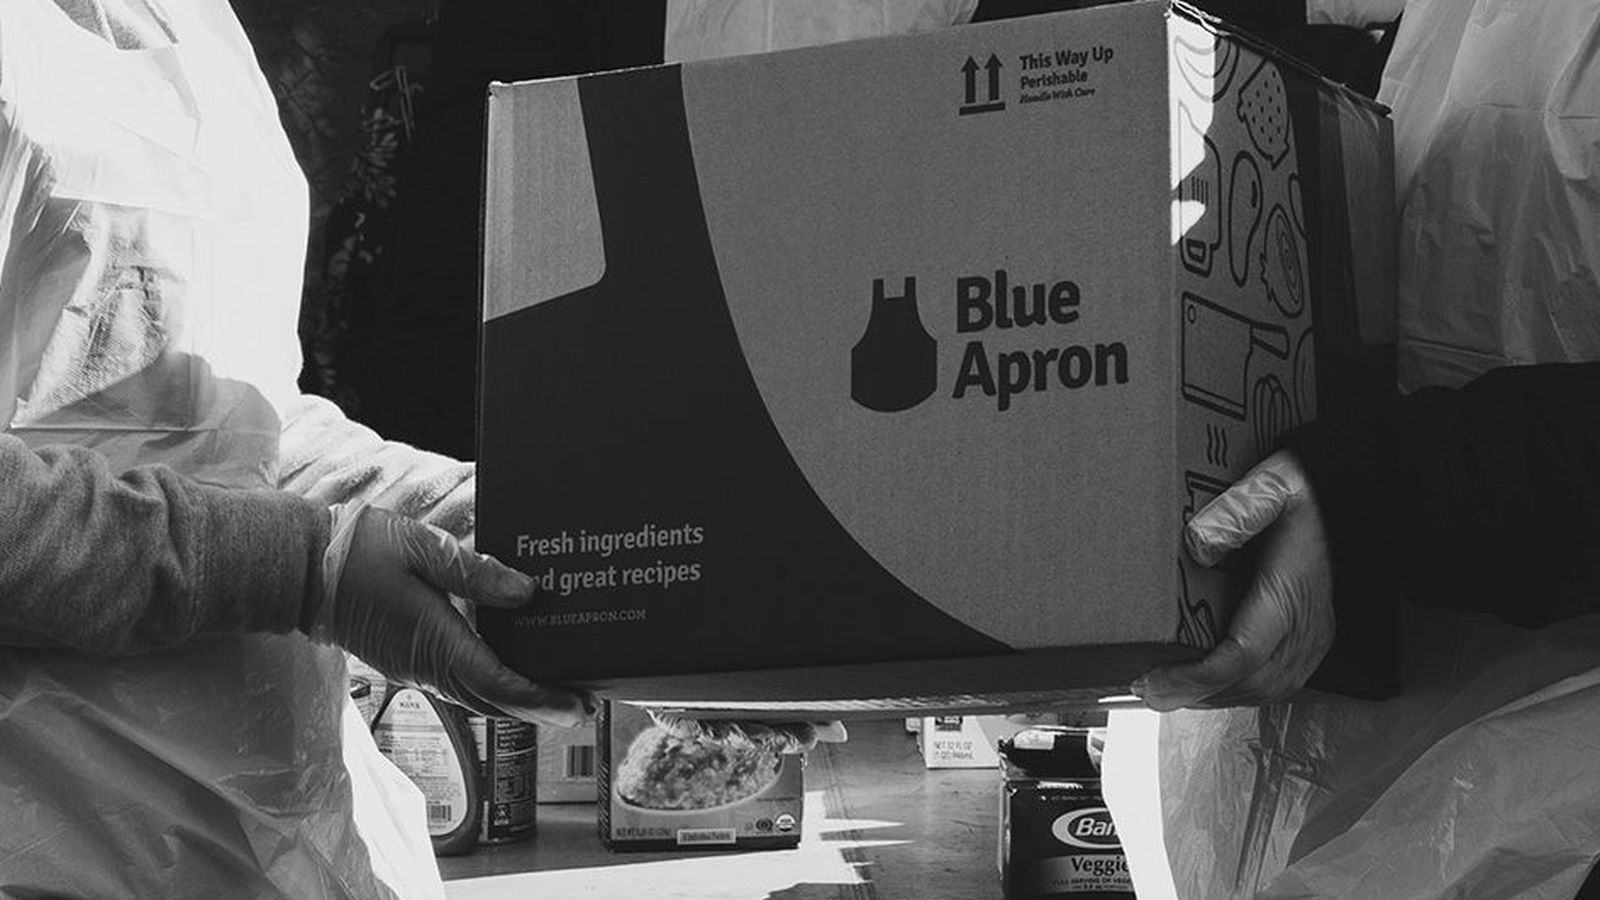 Blue apron job reviews